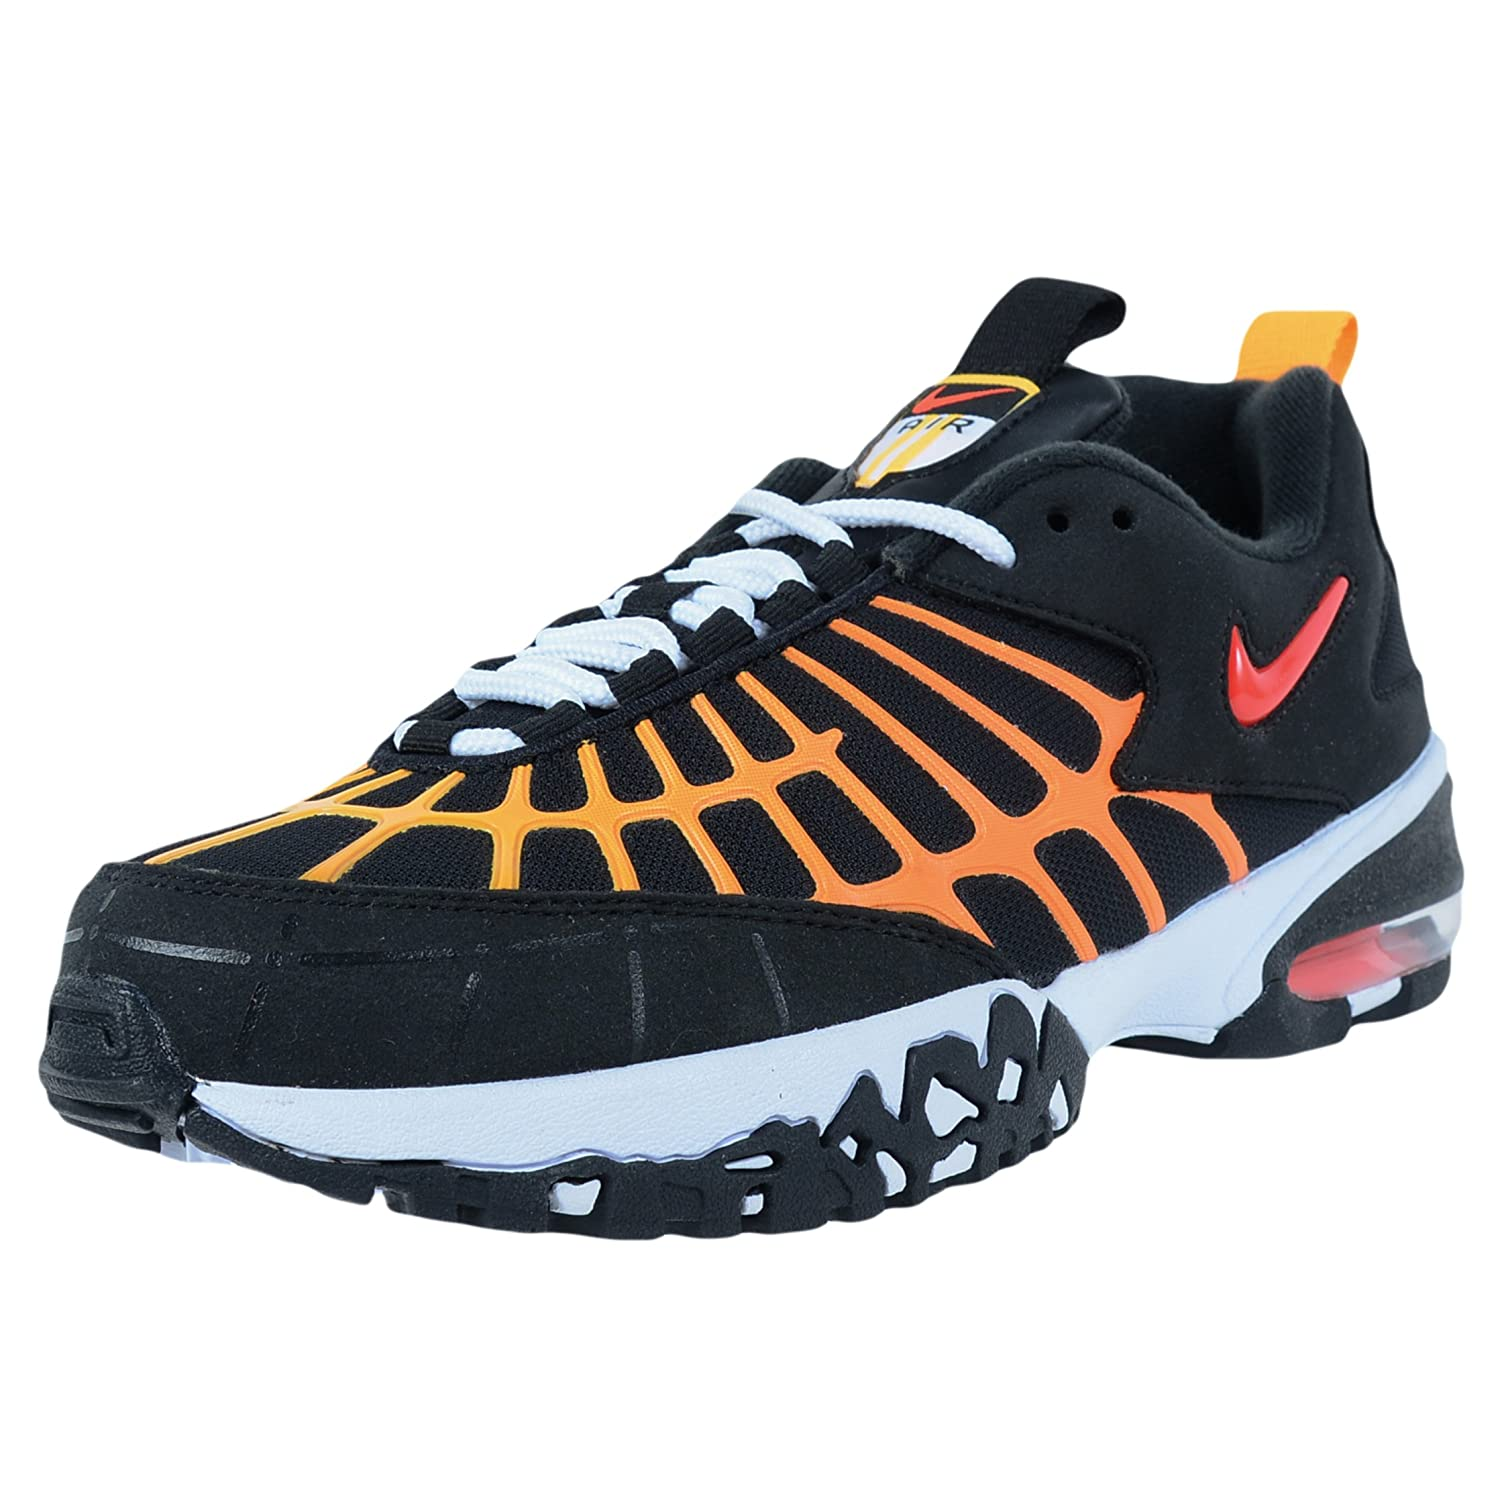 official photos f39ef 9d77b NIKE Men's Air Max 120 Running Shoes